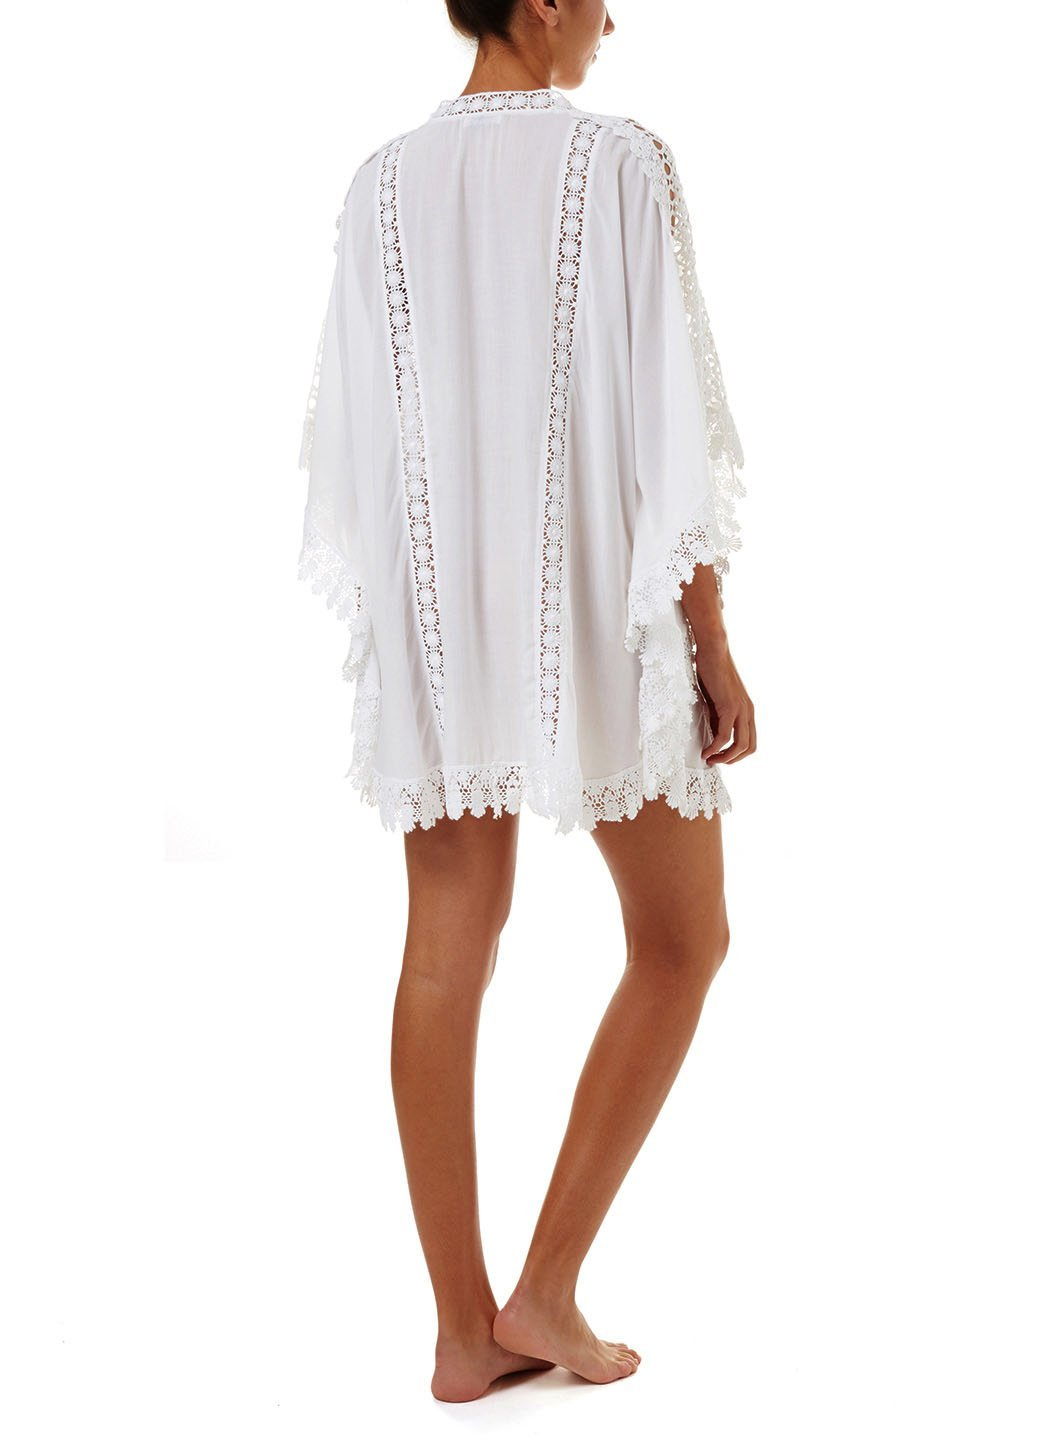 cindy white lace embroidered vneck short kaftan 2019 B